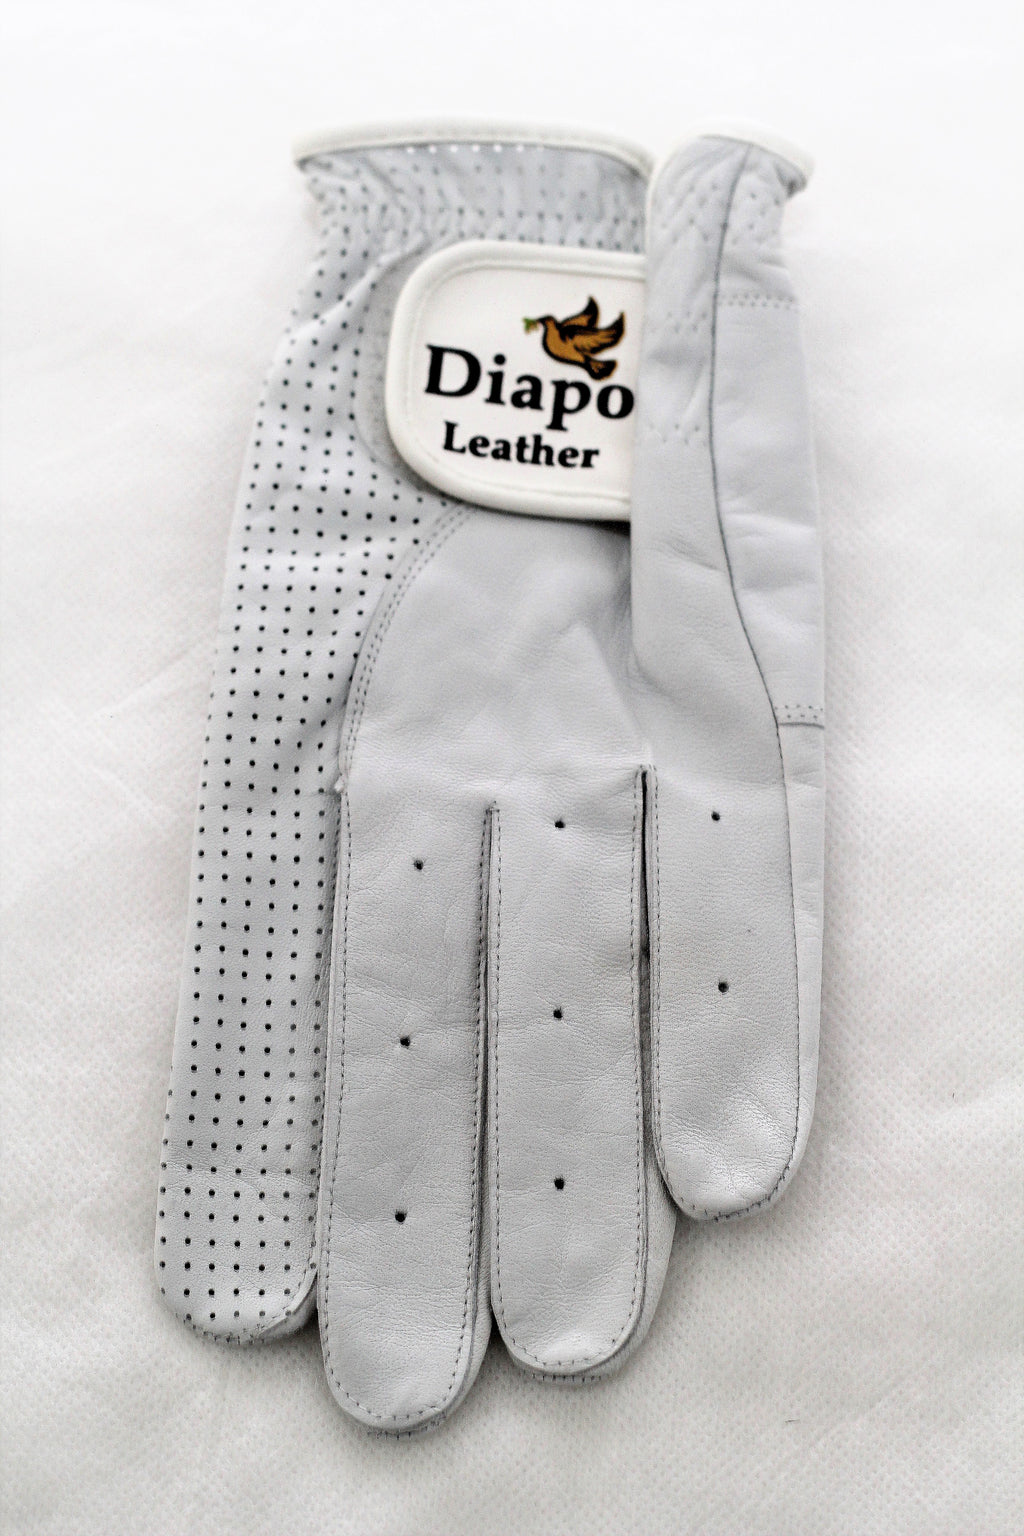 Diapo Leather Women's Left White Golf Vegetable Tanned Leather Gloves      30% OFF